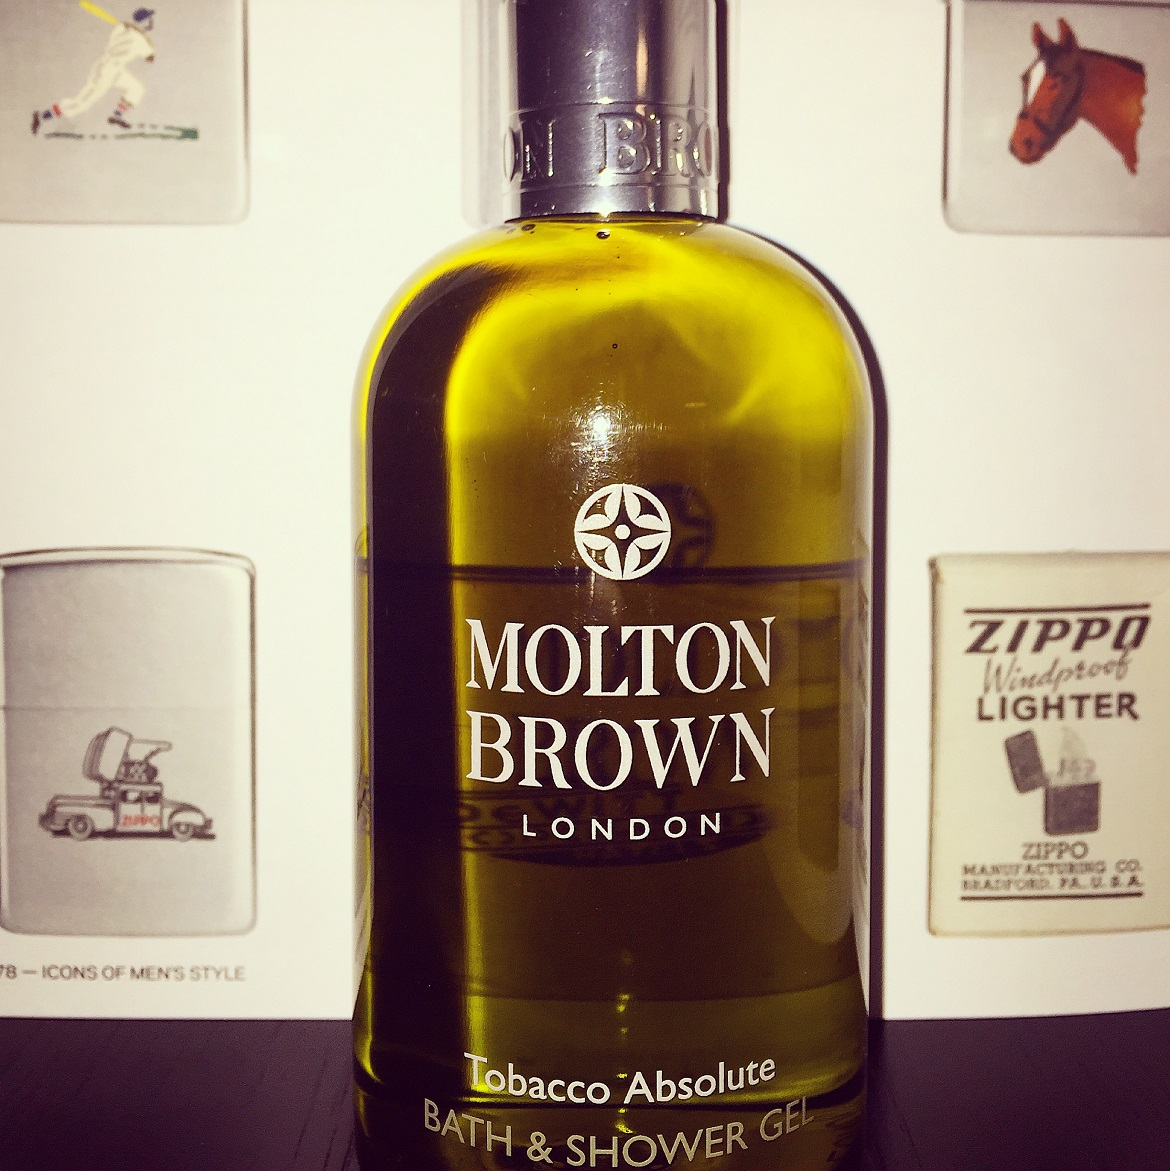 heaven is a place made of molton brown dimitrisgoes tobacco absolute new shower gel for men